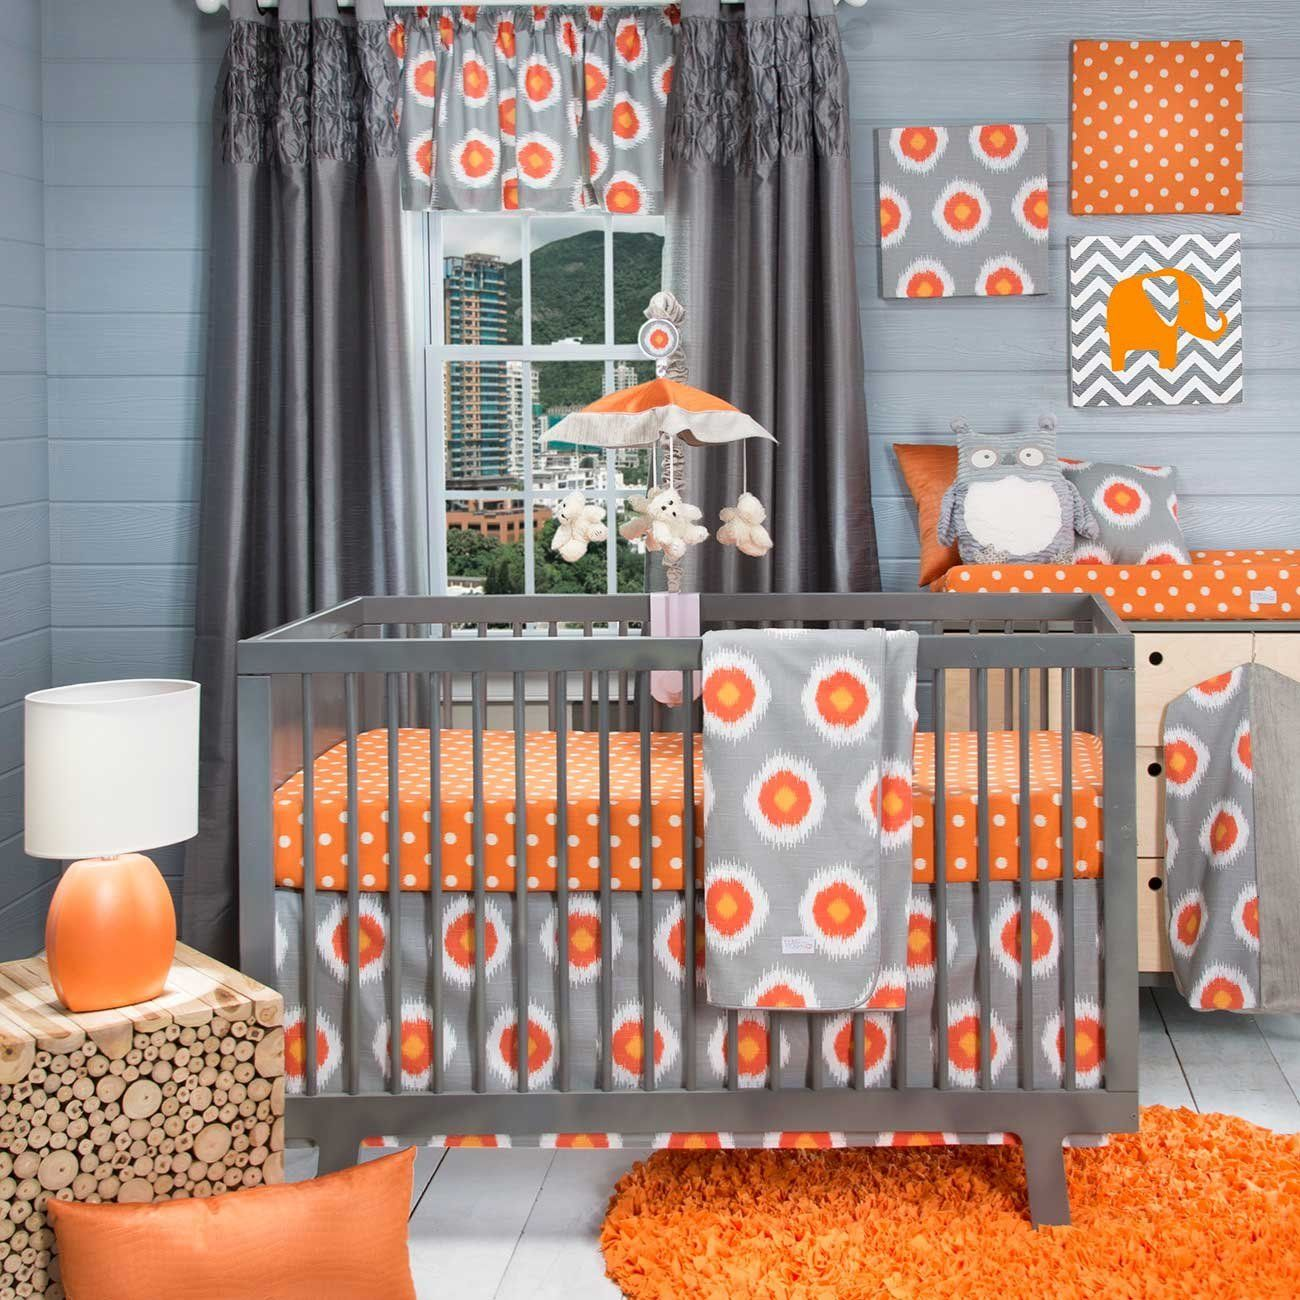 Baby Room Ideas Nursery Themes And Decor: Baby Nursery, : Unique Baby Nursery Room Decoration With